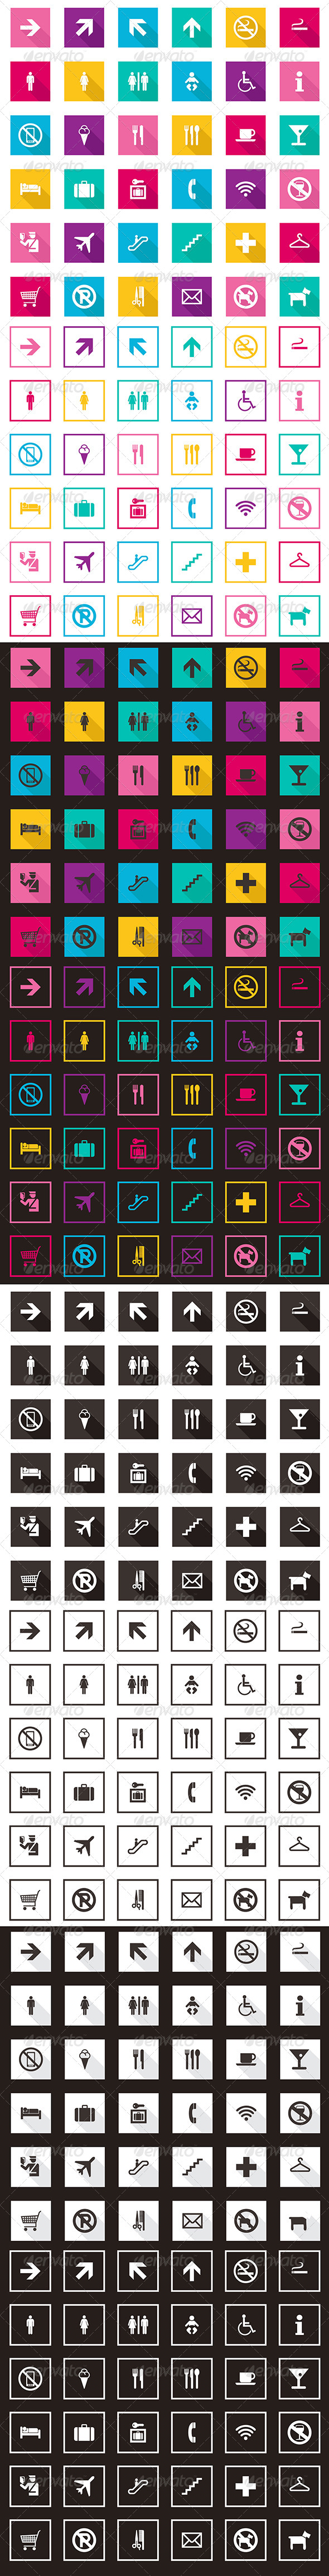 Travel And Tourism Icons Collection - Icons